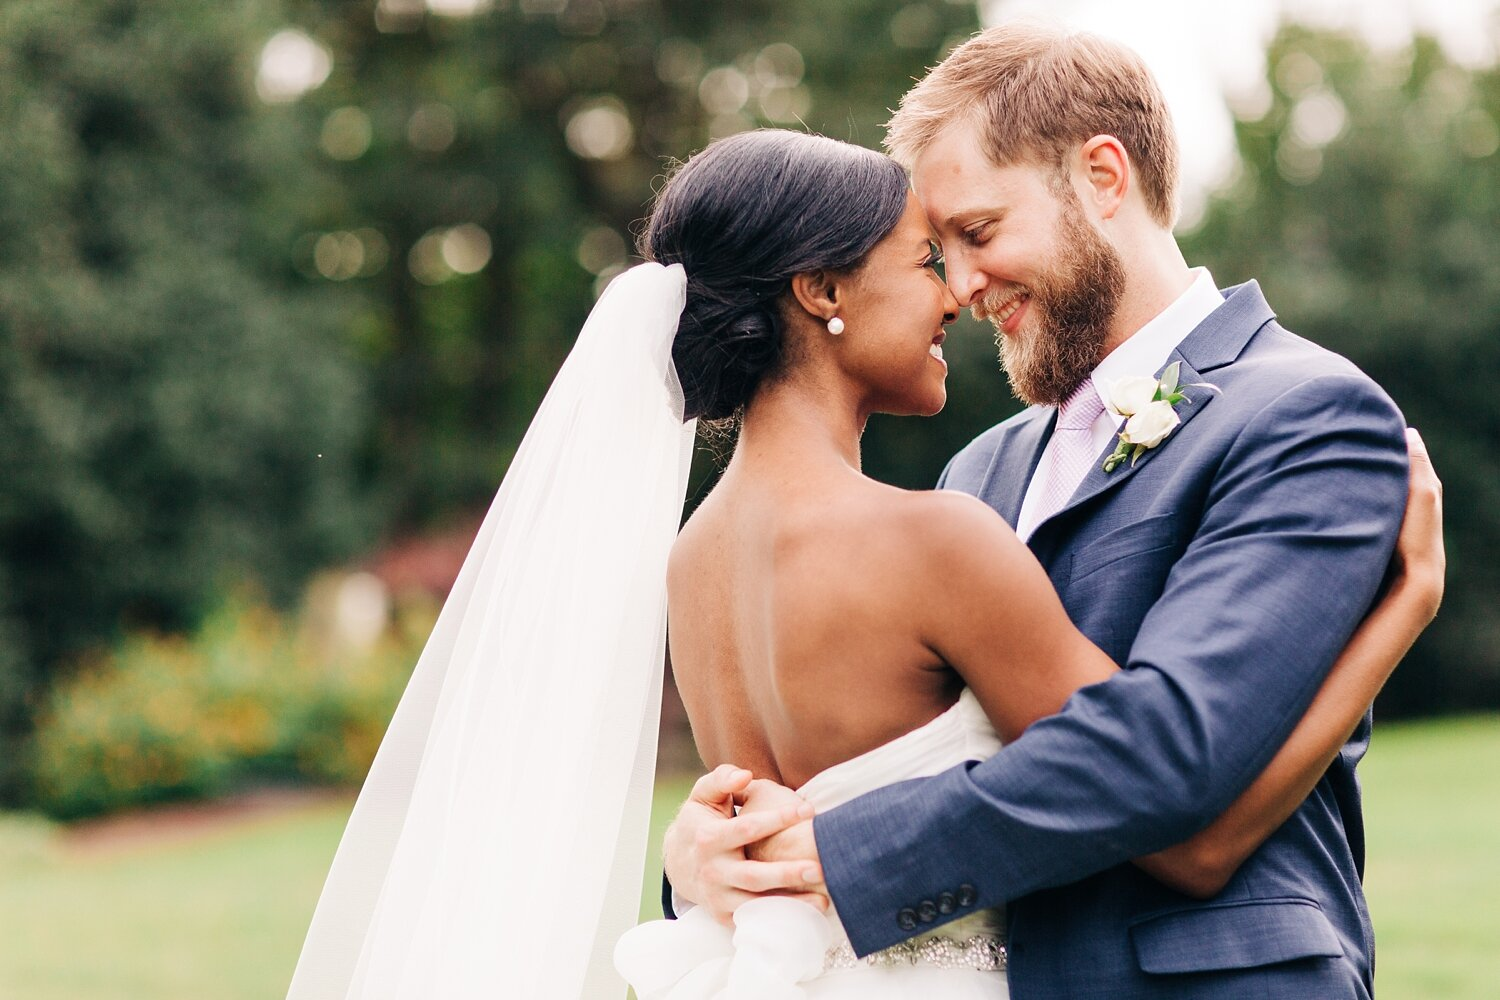 bride and groom hug and touch foreheads